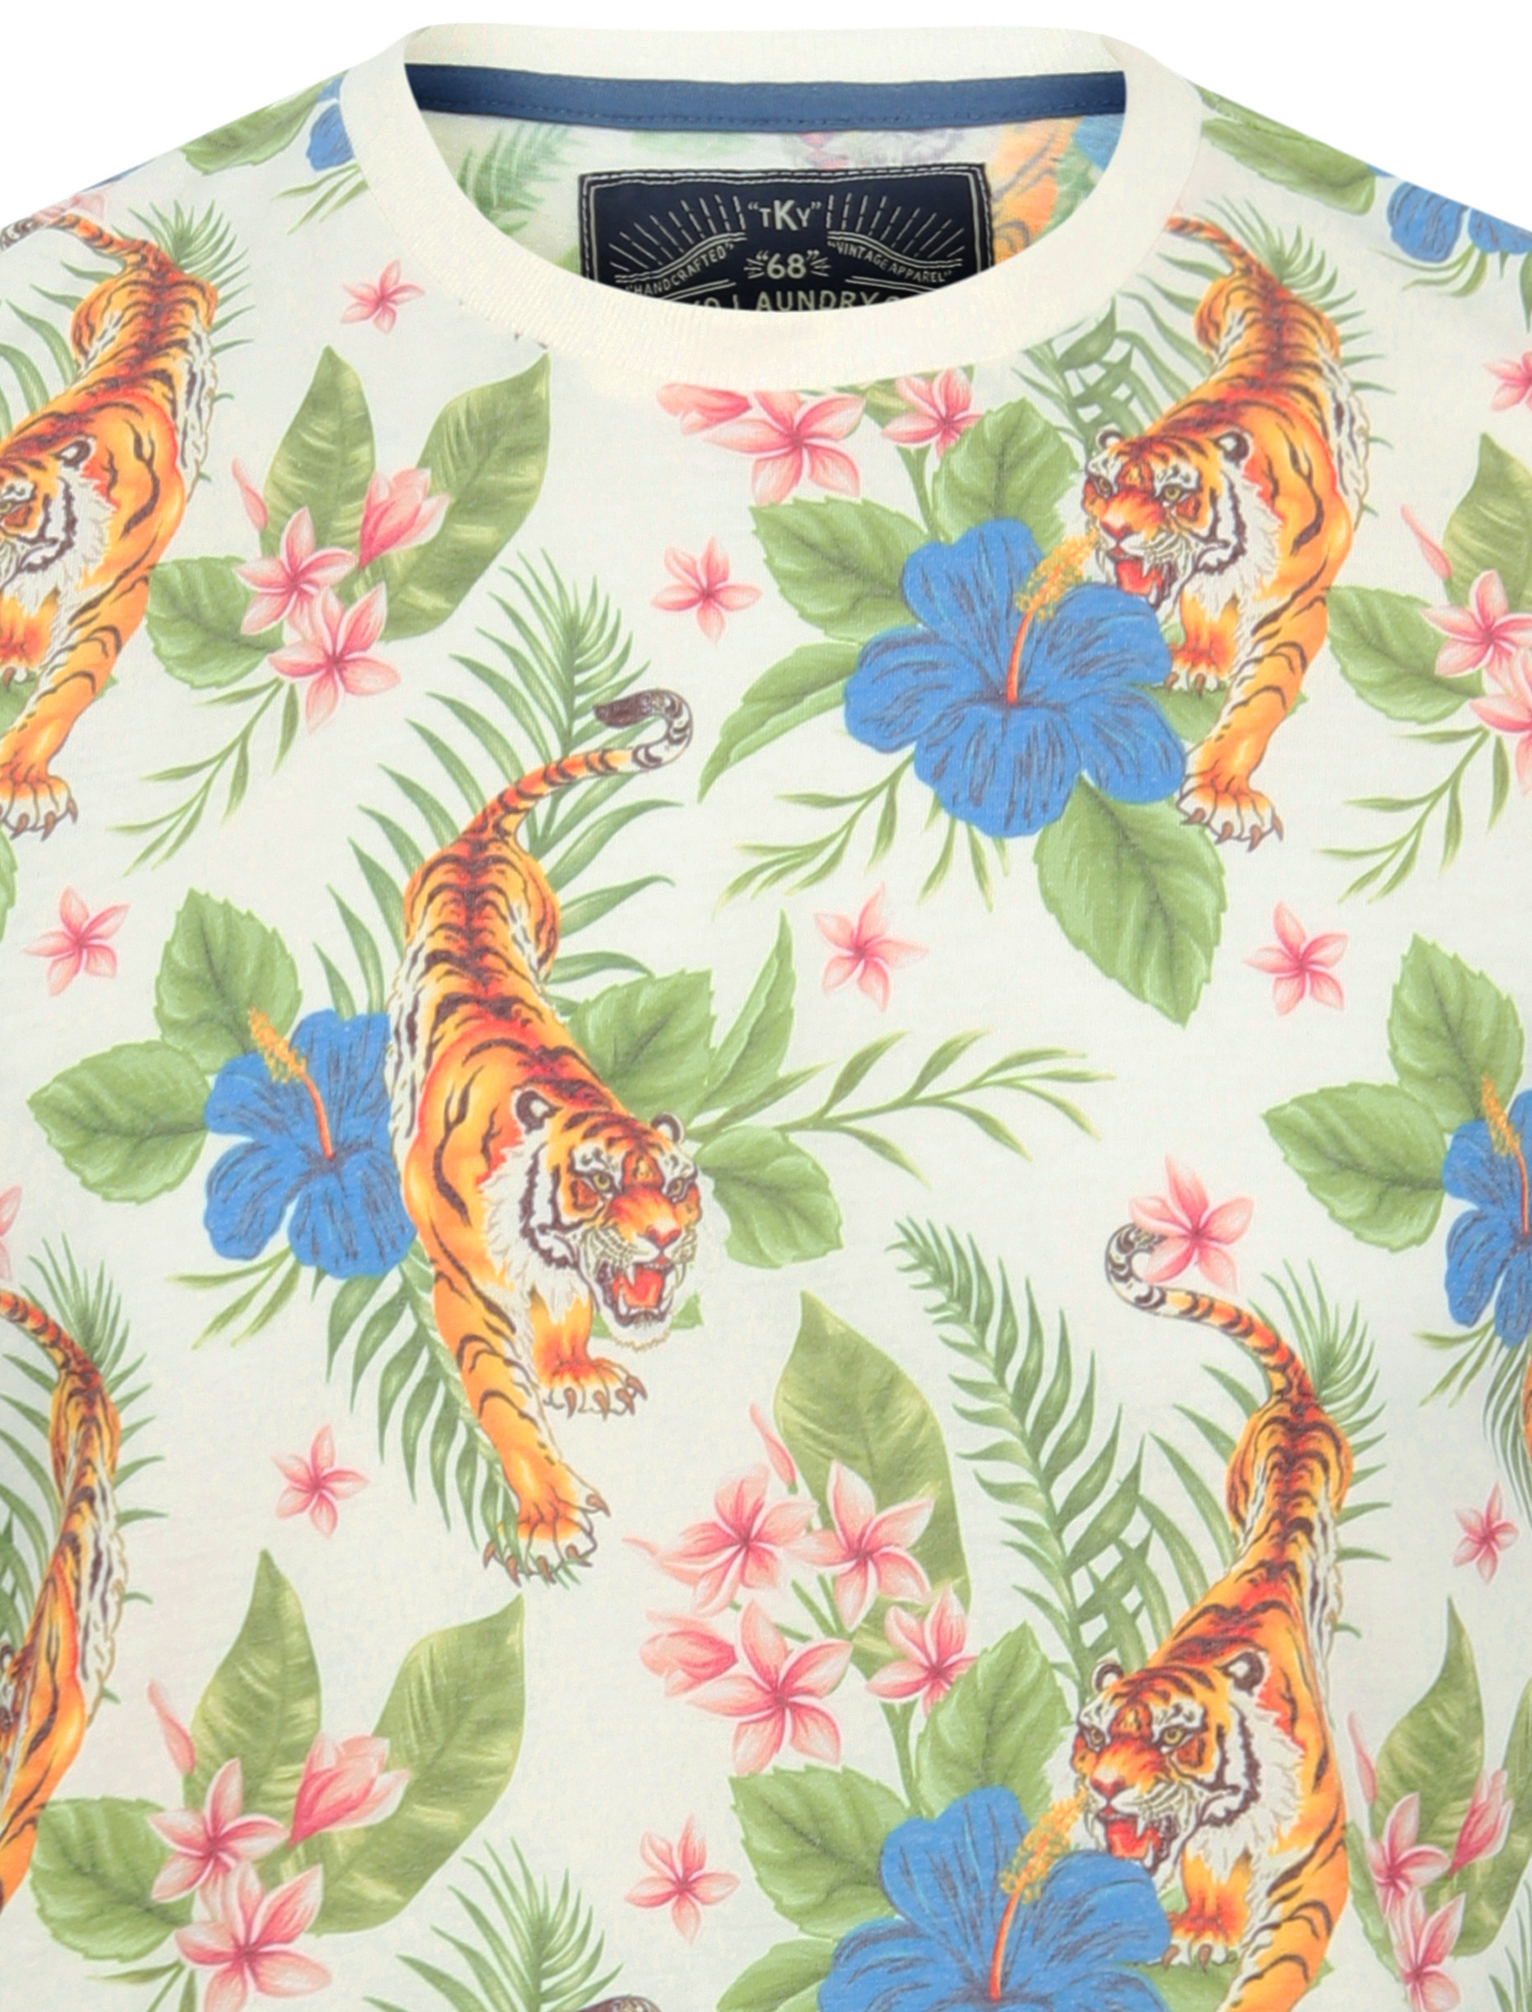 Tokyo-Laundry-Tropical-Print-Crew-Neck-T-Shirt-Hawaiian-Floral-Summer-Holiday thumbnail 26